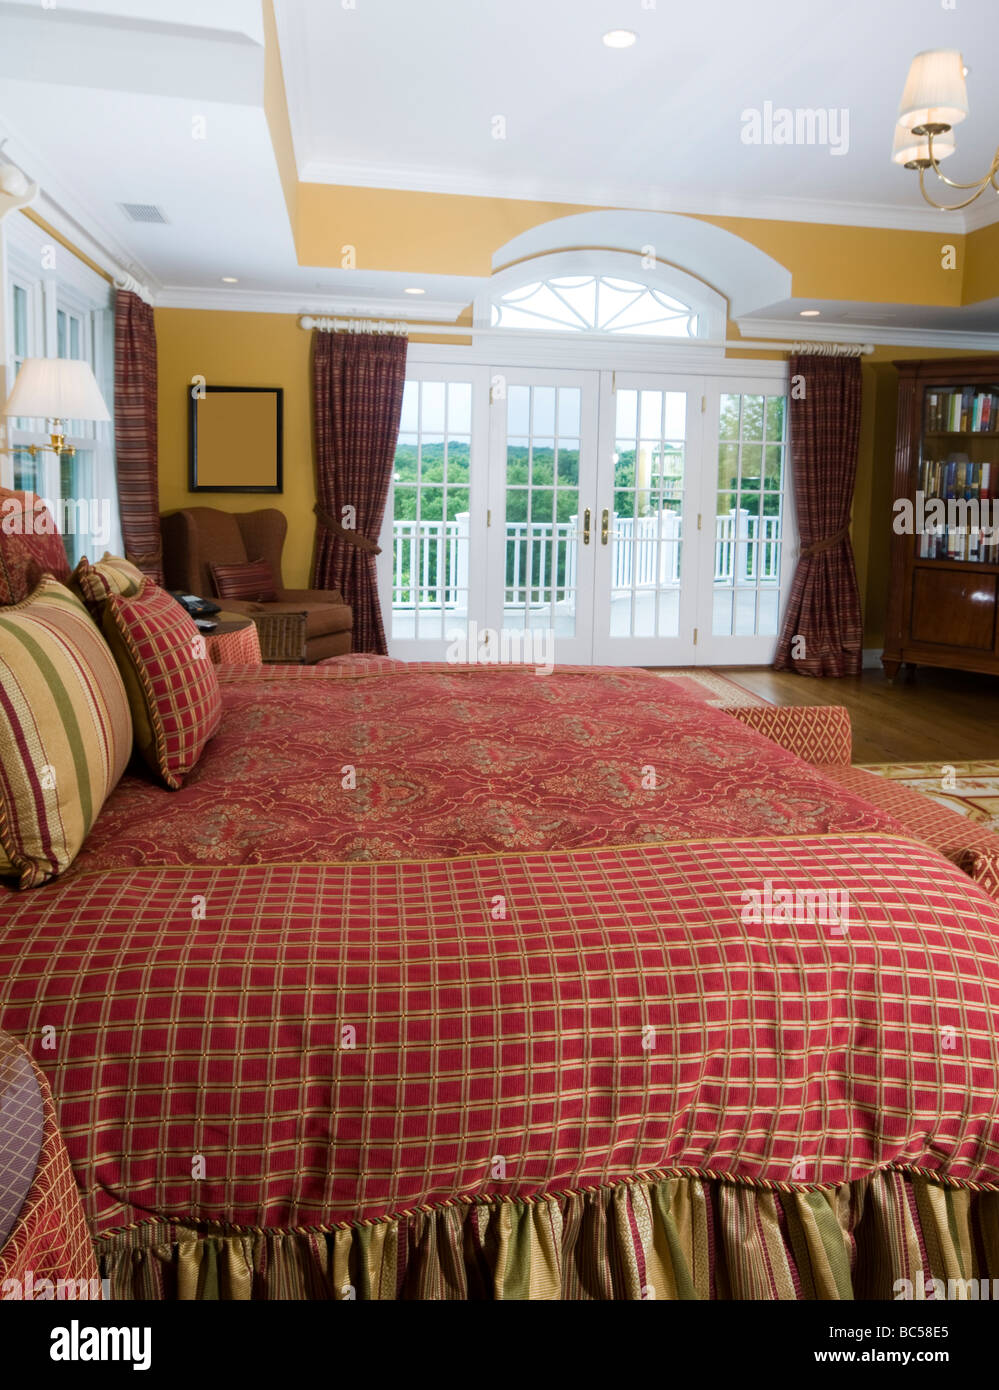 Lovely Master Bedroom With King Size Bed Book Case And French Doors Stock Photo Alamy